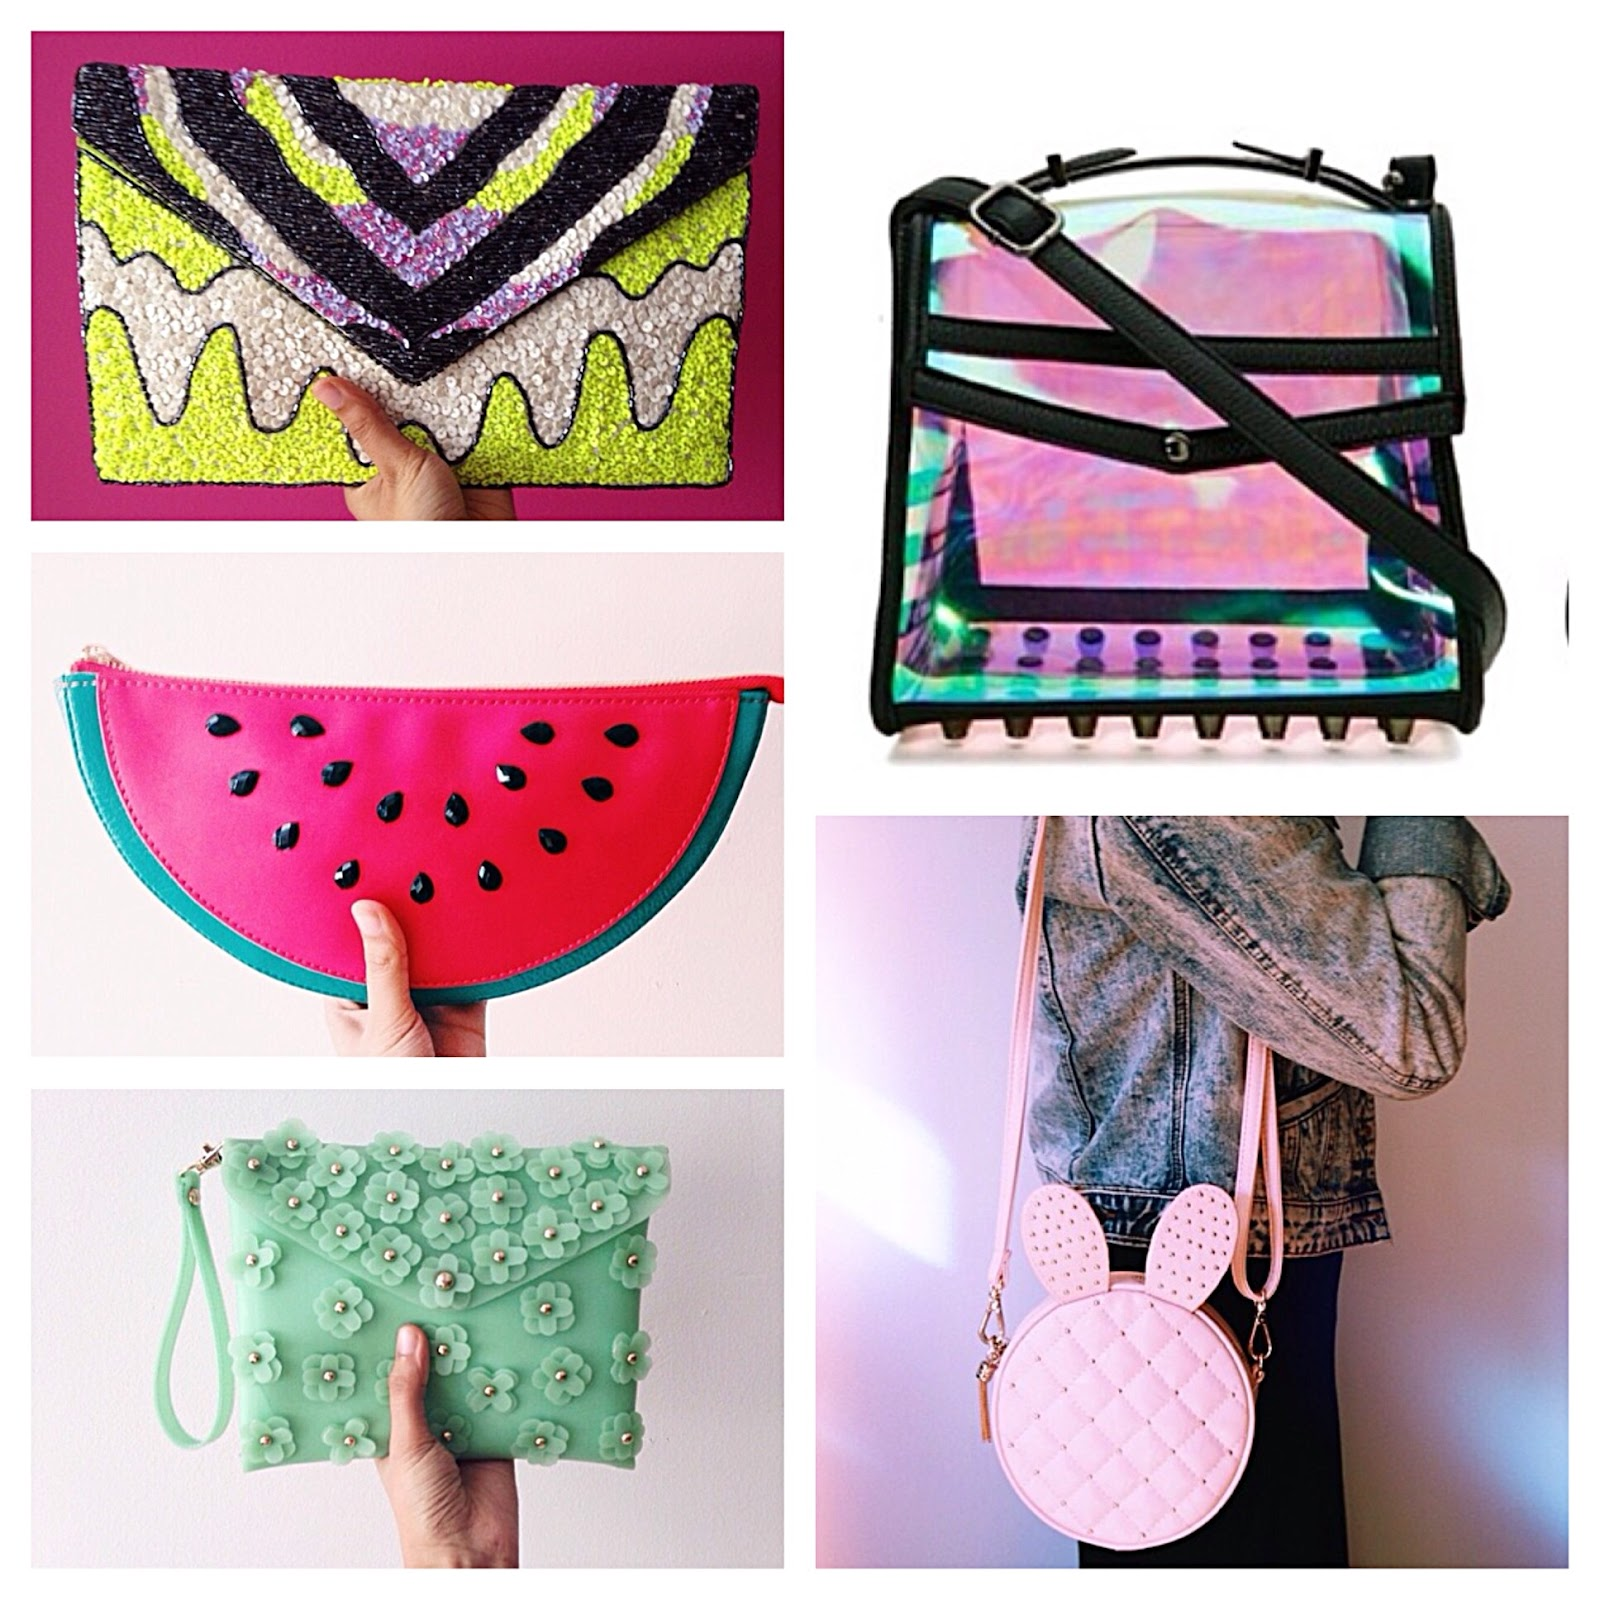 nila anthony hand bags, handbags, watermelon clutch, neon transparent purse, 3d mint flower clutch